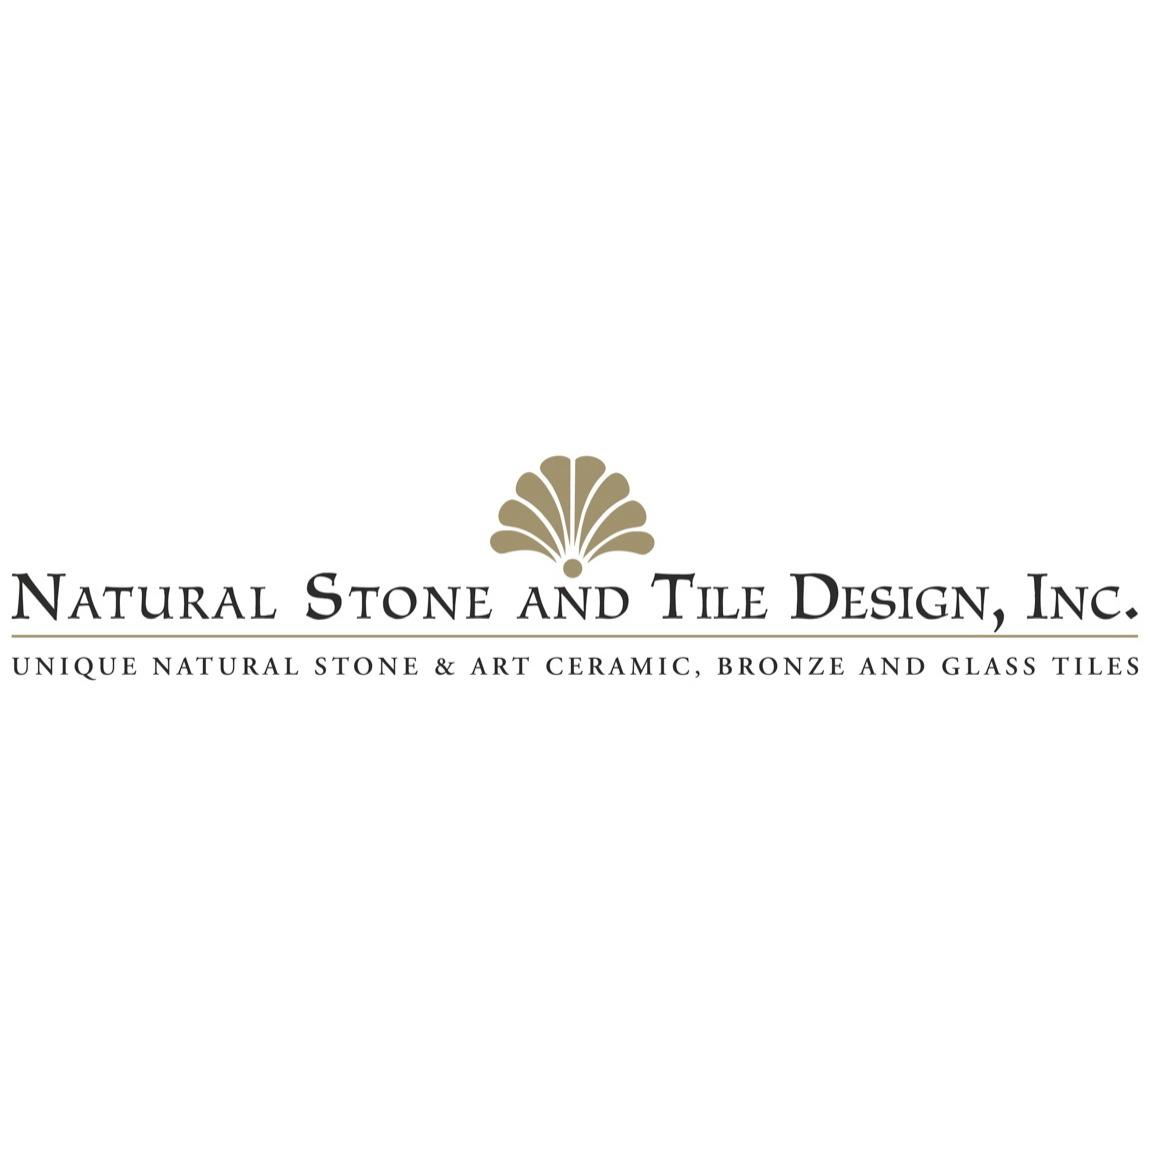 Natural Stone and Tile Design, Inc.